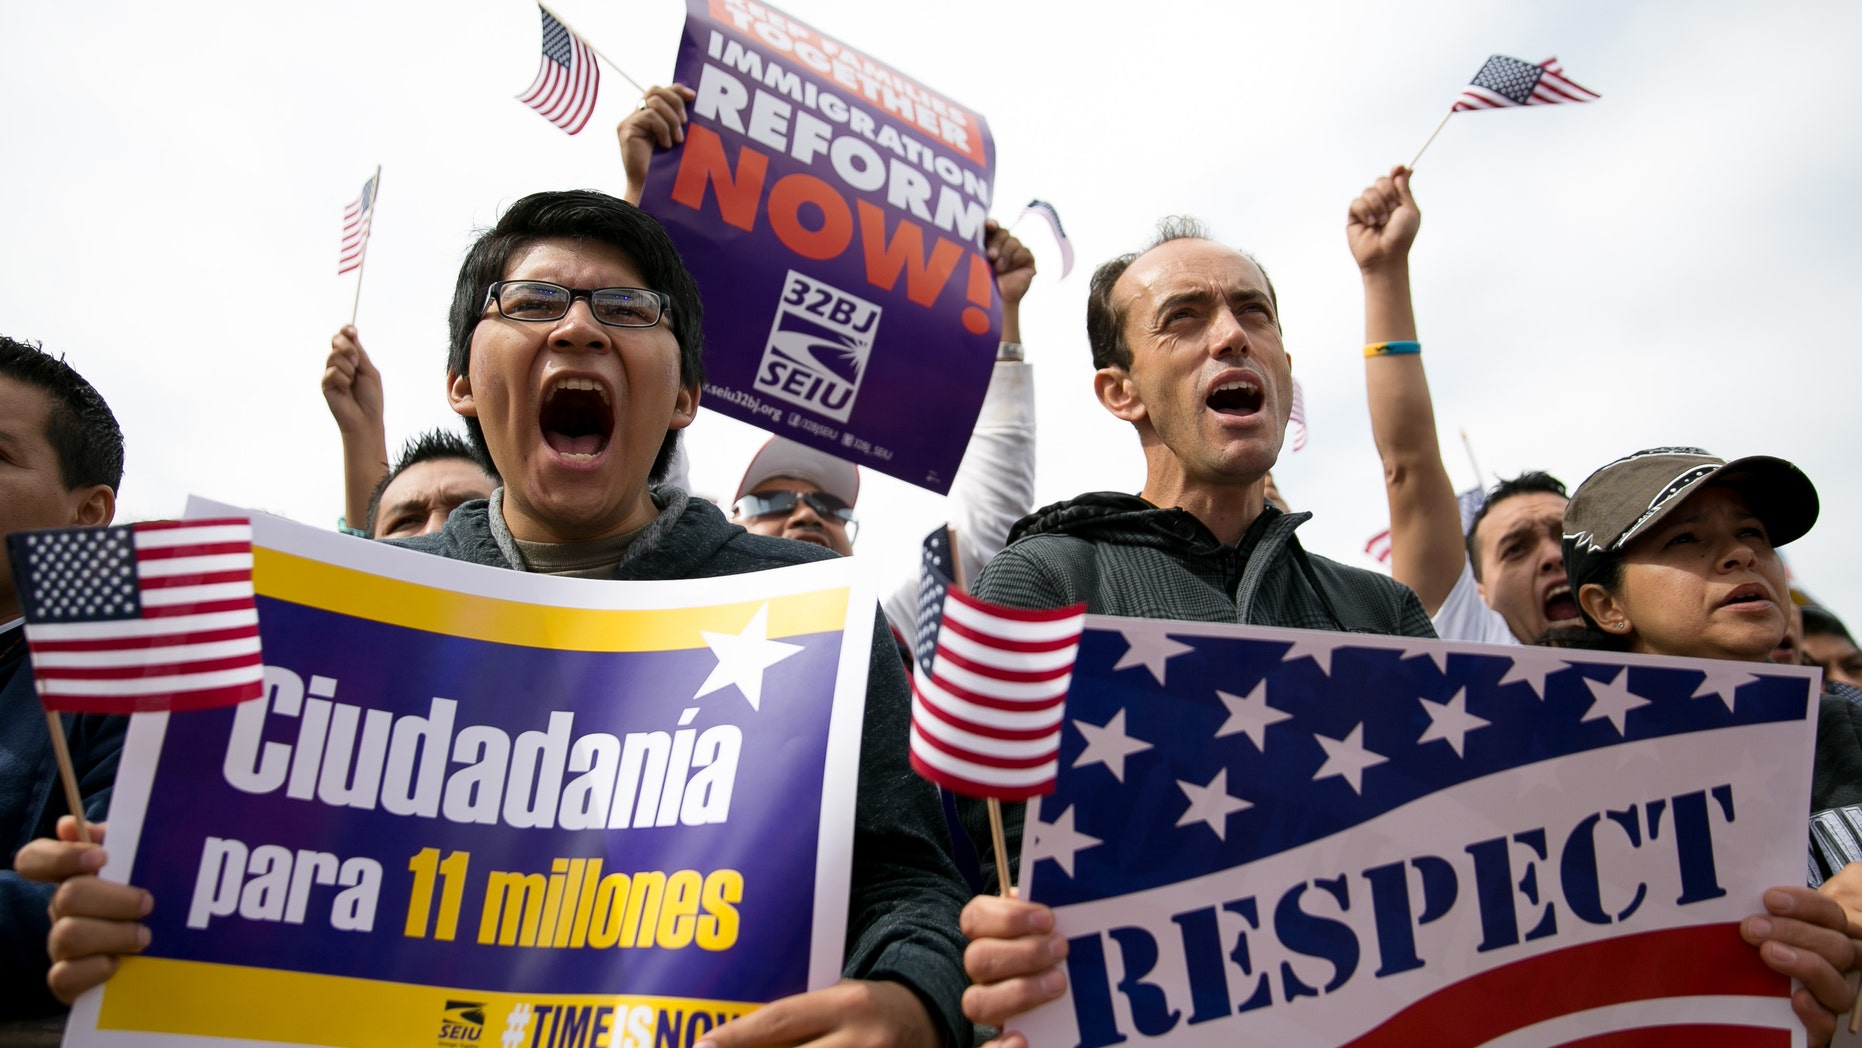 WASHINGTON, DC - OCTOBER 8:  (L to R) Hernan Morales, a student at American University, and Juan Martinez, cheer during a rally in support of immigration reform, in Washington, on October 8, 2013 in Washington, DC. Last week, House Democrats introduced their own immigration reform bill. (Photo by Drew Angerer/Getty Images)